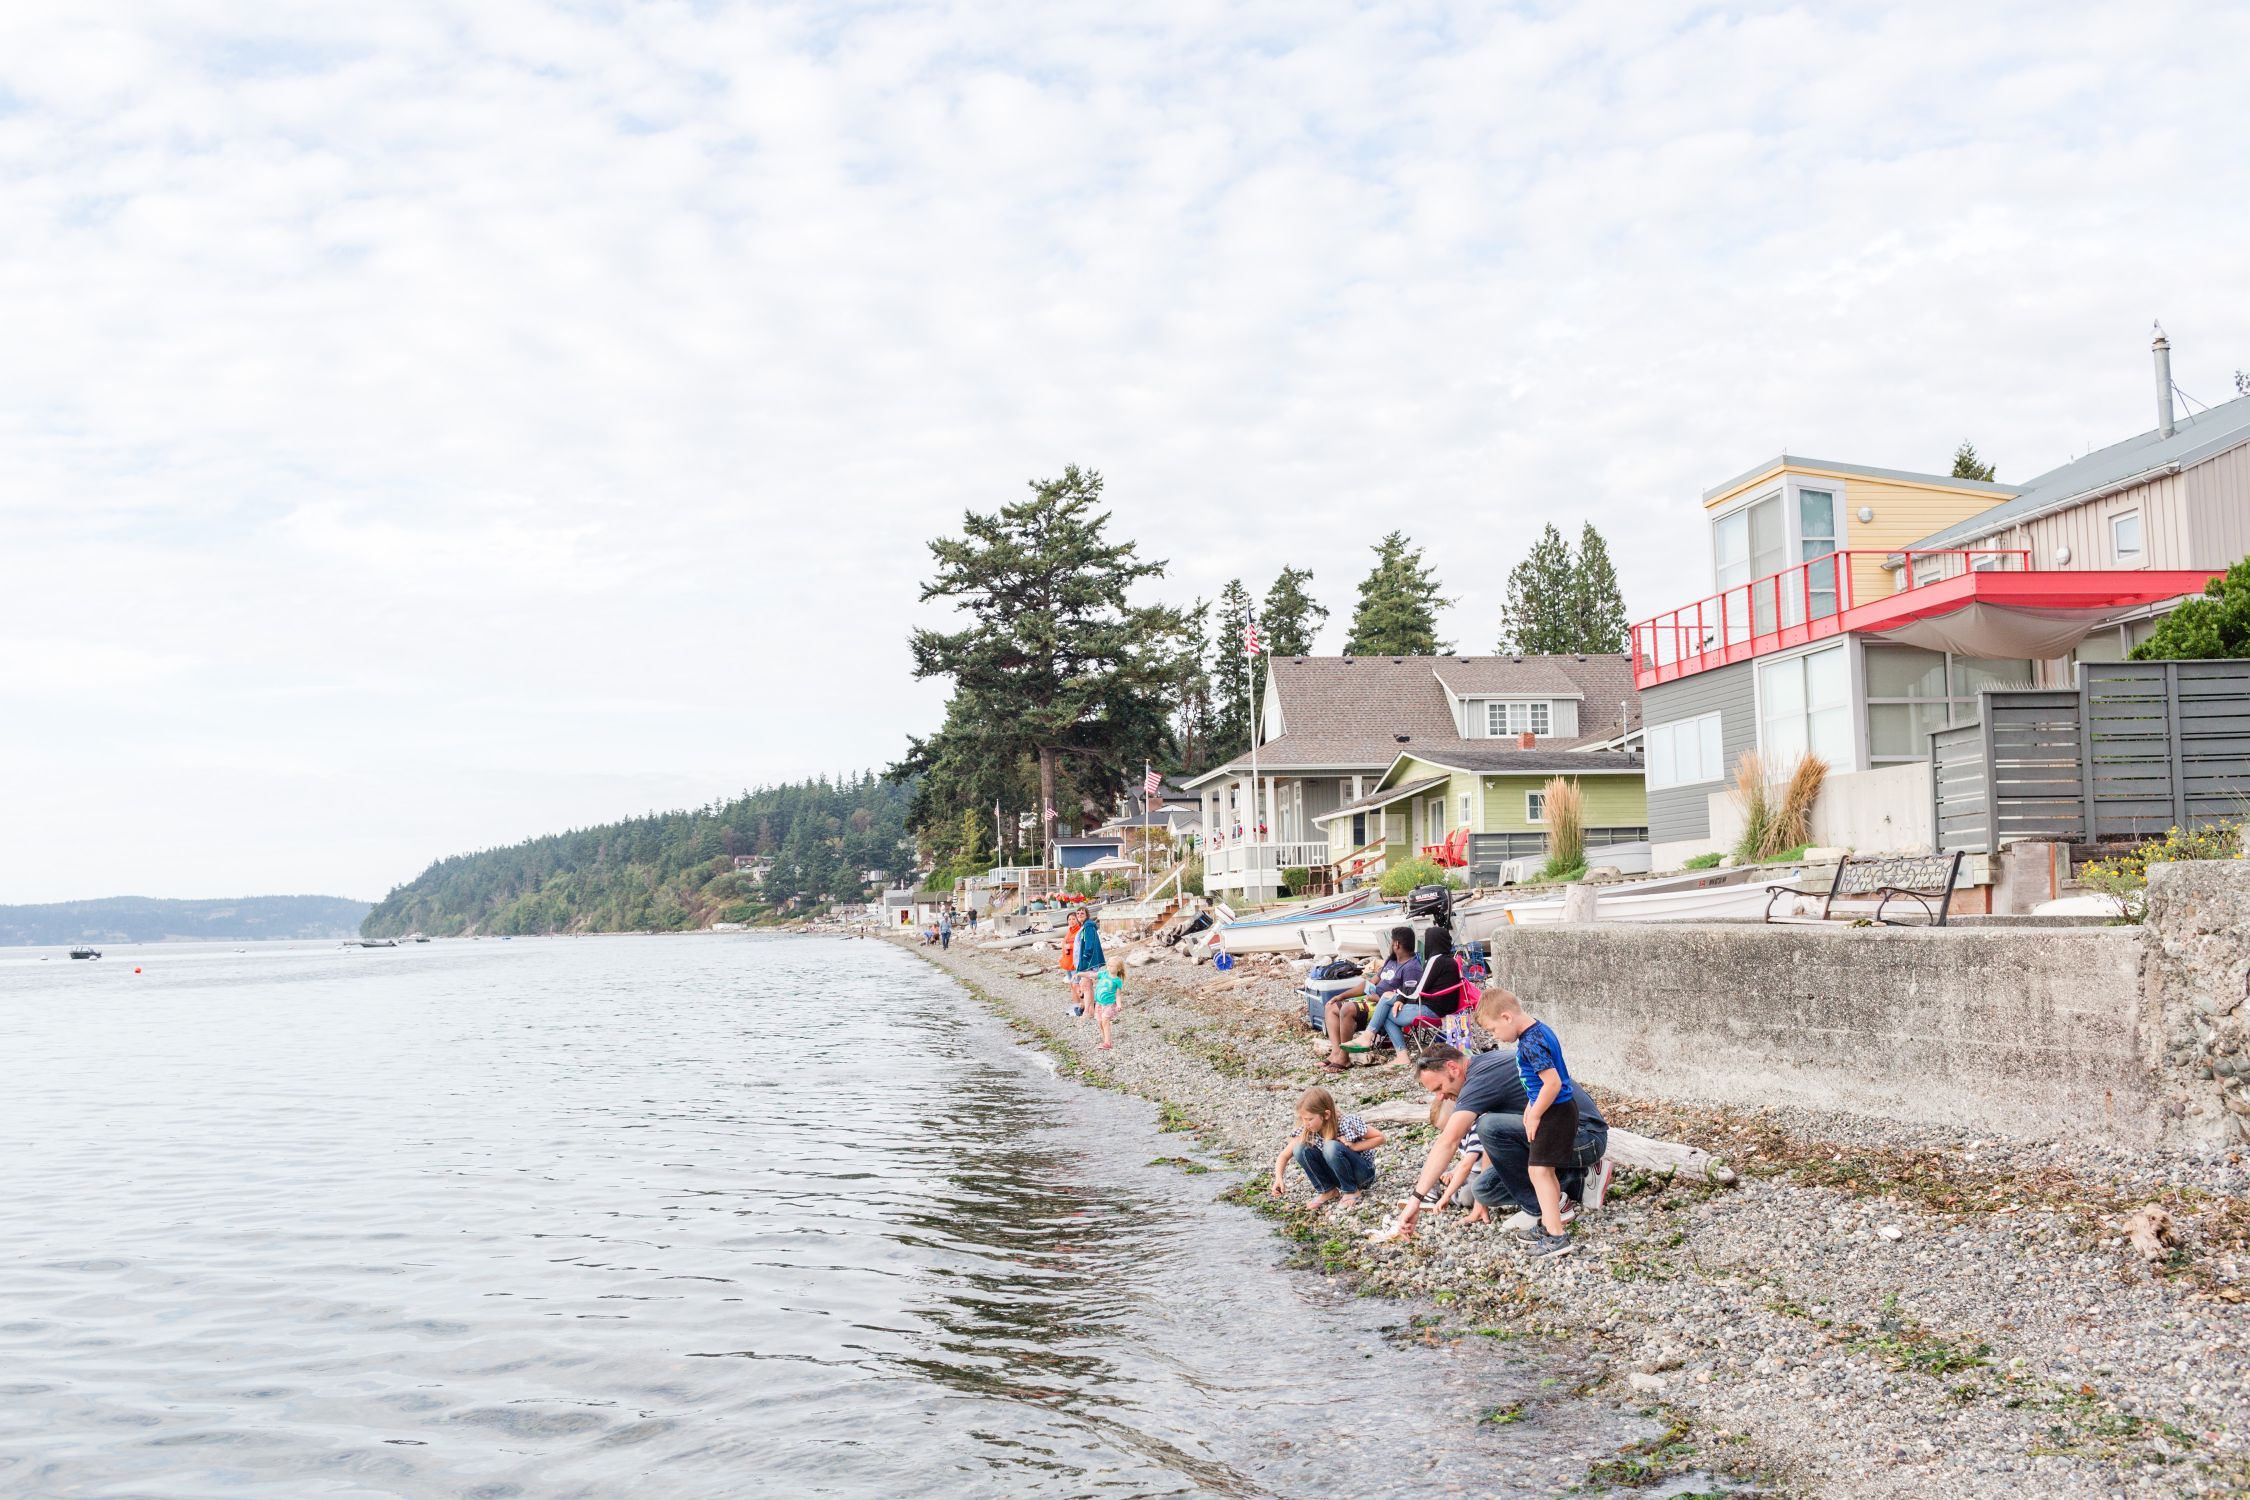 "<a href=""http://stanwood-camano-windermere.withwre.com/madrona-beach""><h4>Madrona Beach</h4>Camano Island</a>"